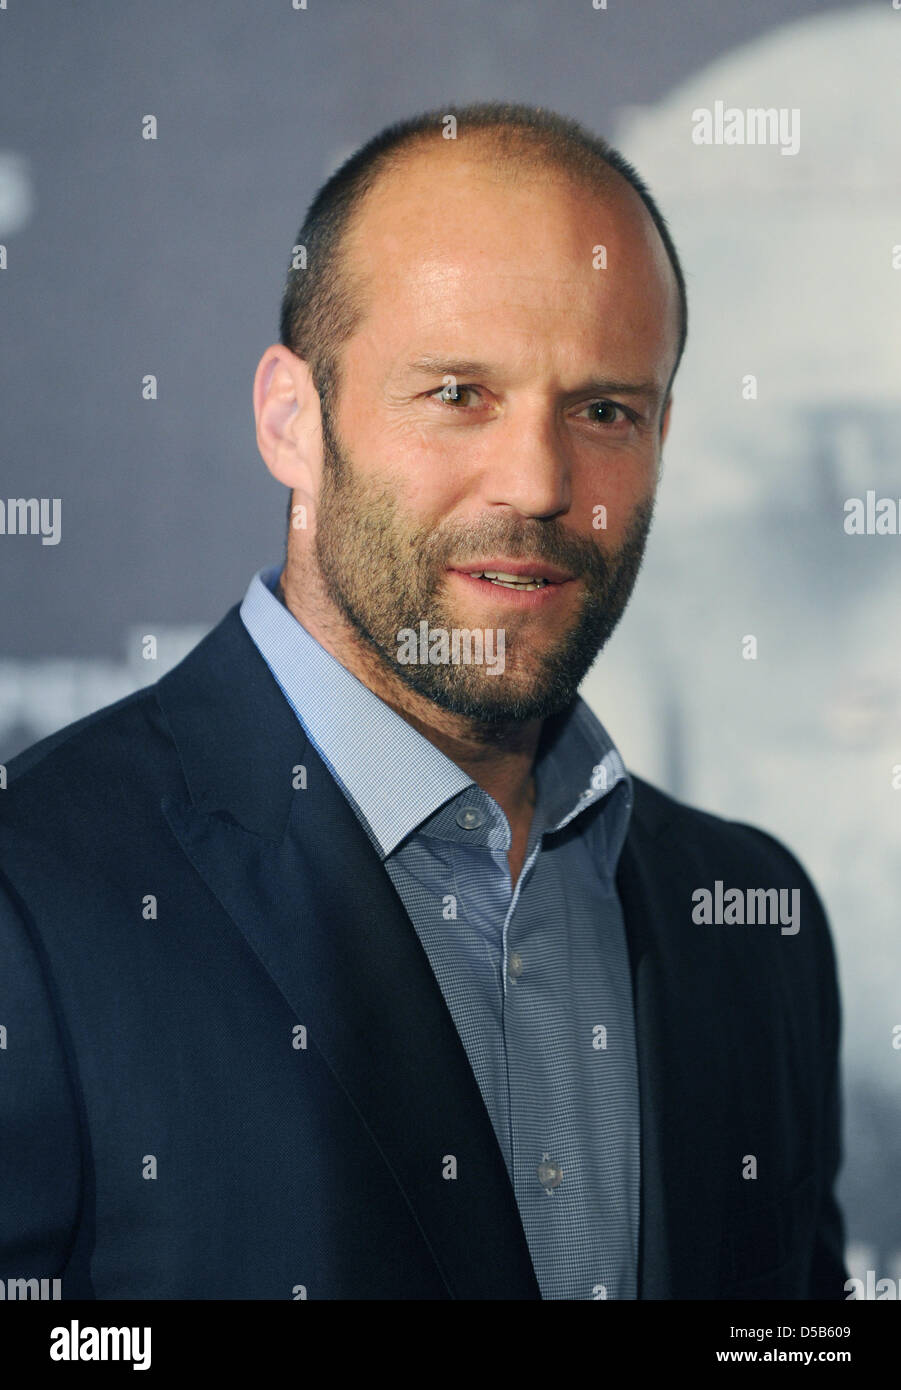 British actor Jason Statham smiles as he promotes his new movie 'The Expendables' in Berlin, Germany, 06 August Stock Photo